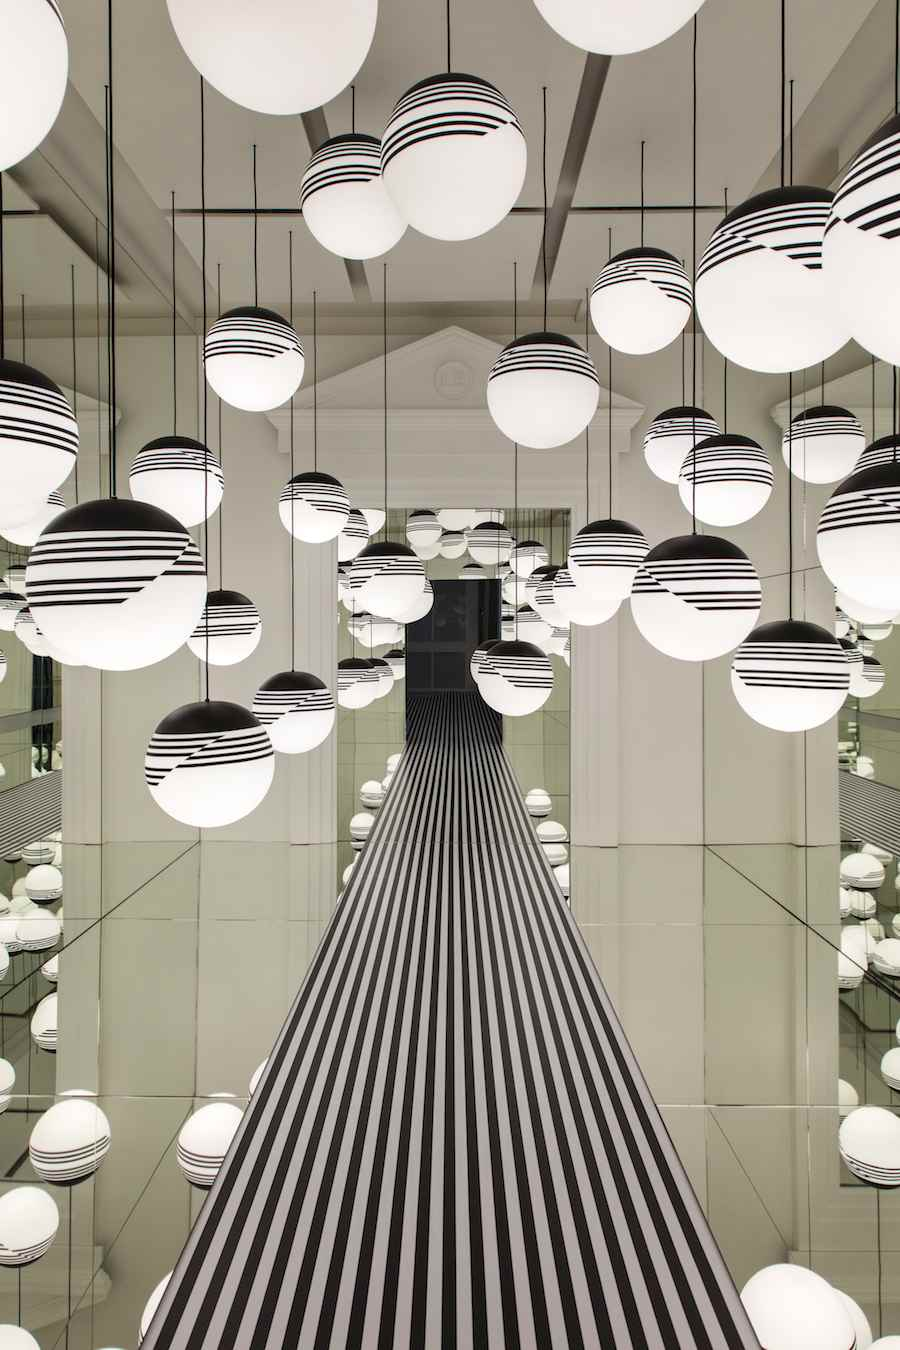 lee-broom-opticality-for-ldf-2016-photo-credit-luke-hayes-3